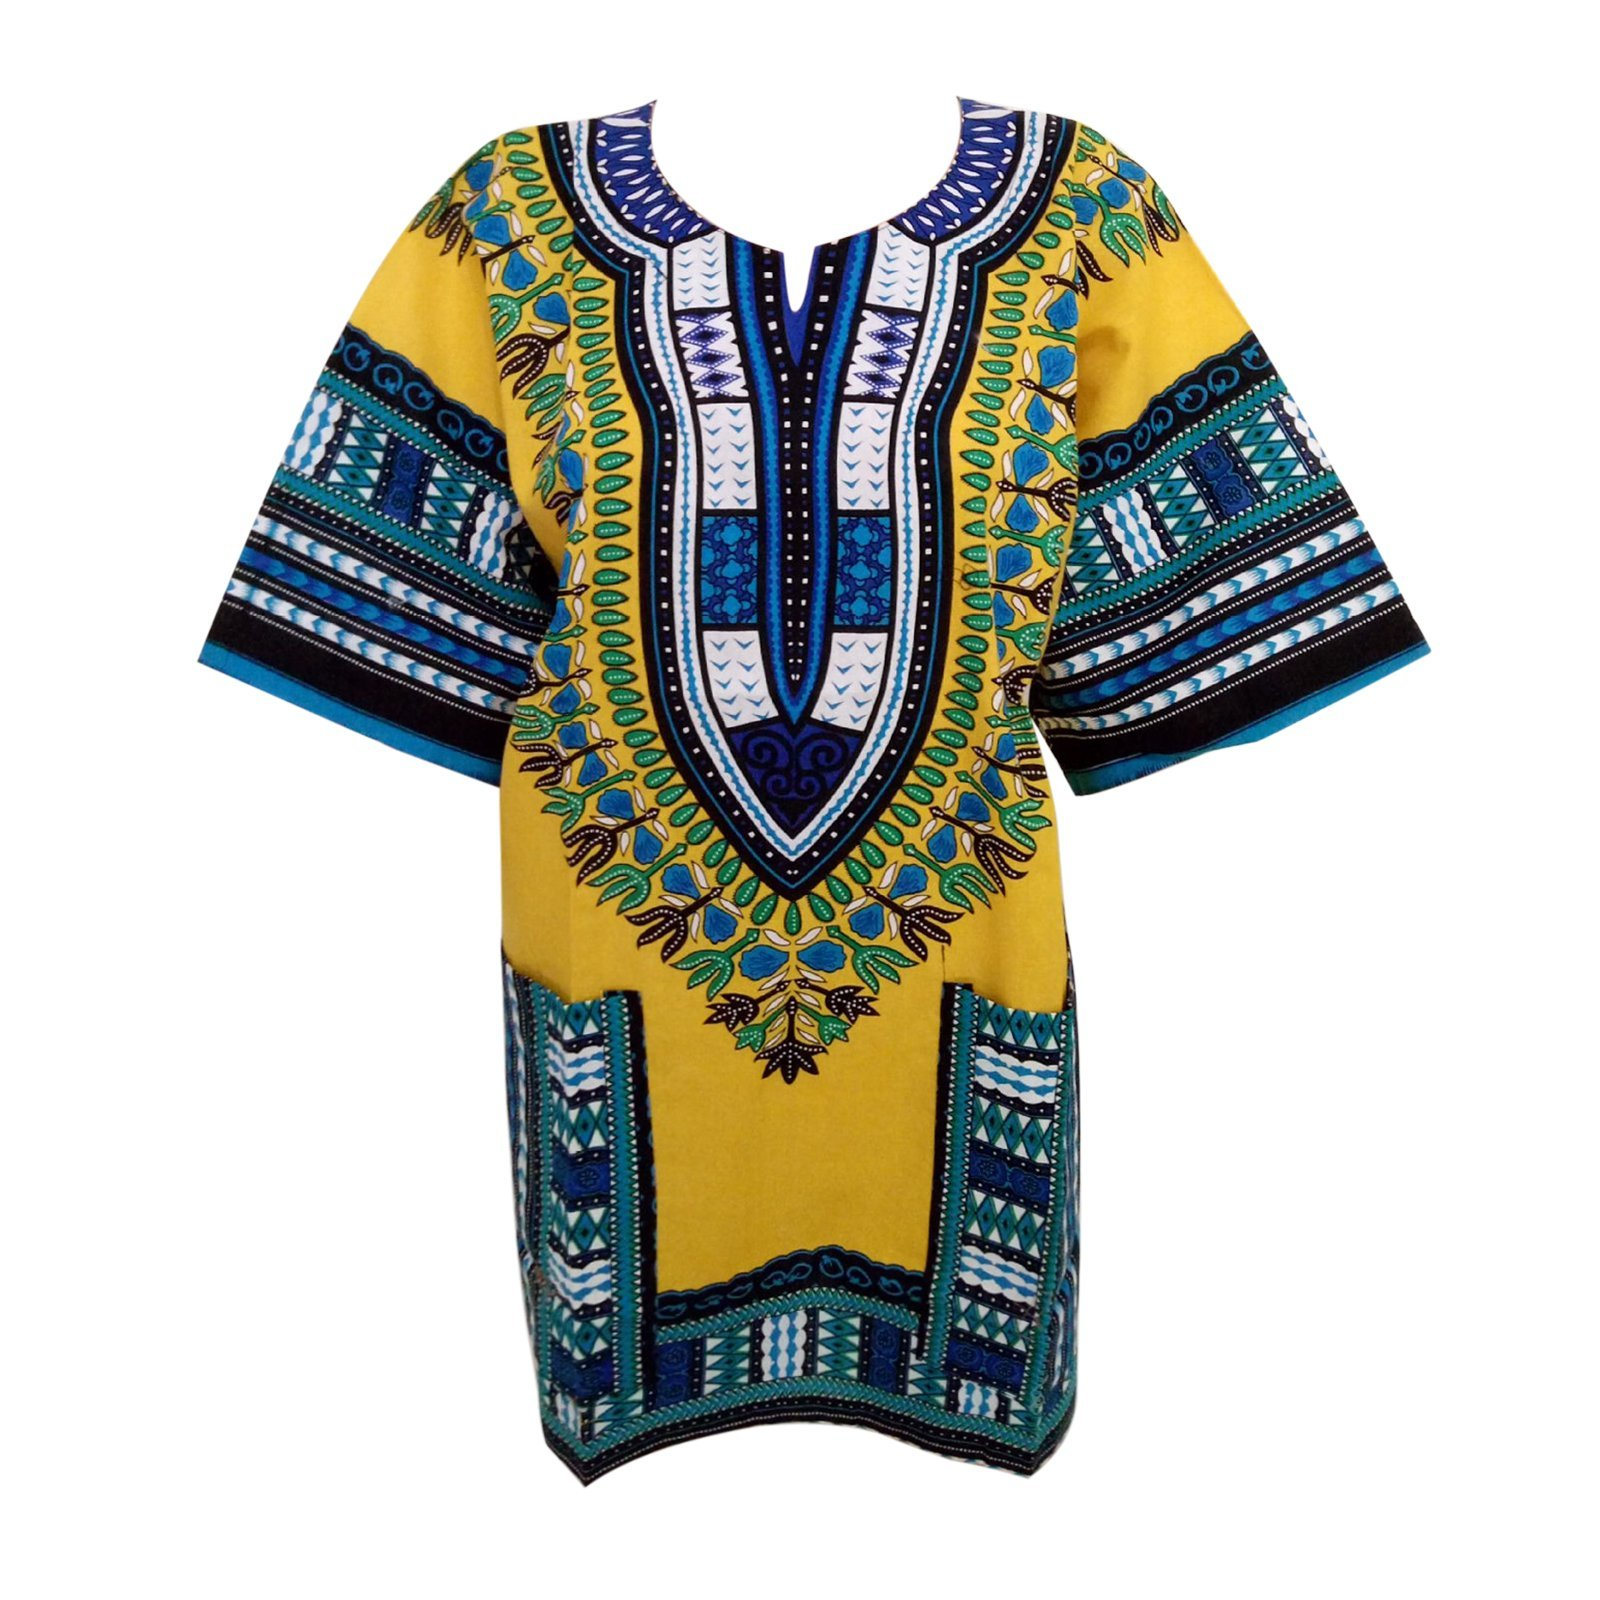 Moxeay Traditional African Vintage Print Unisex Dashiki Top (Free Size, Yellow)